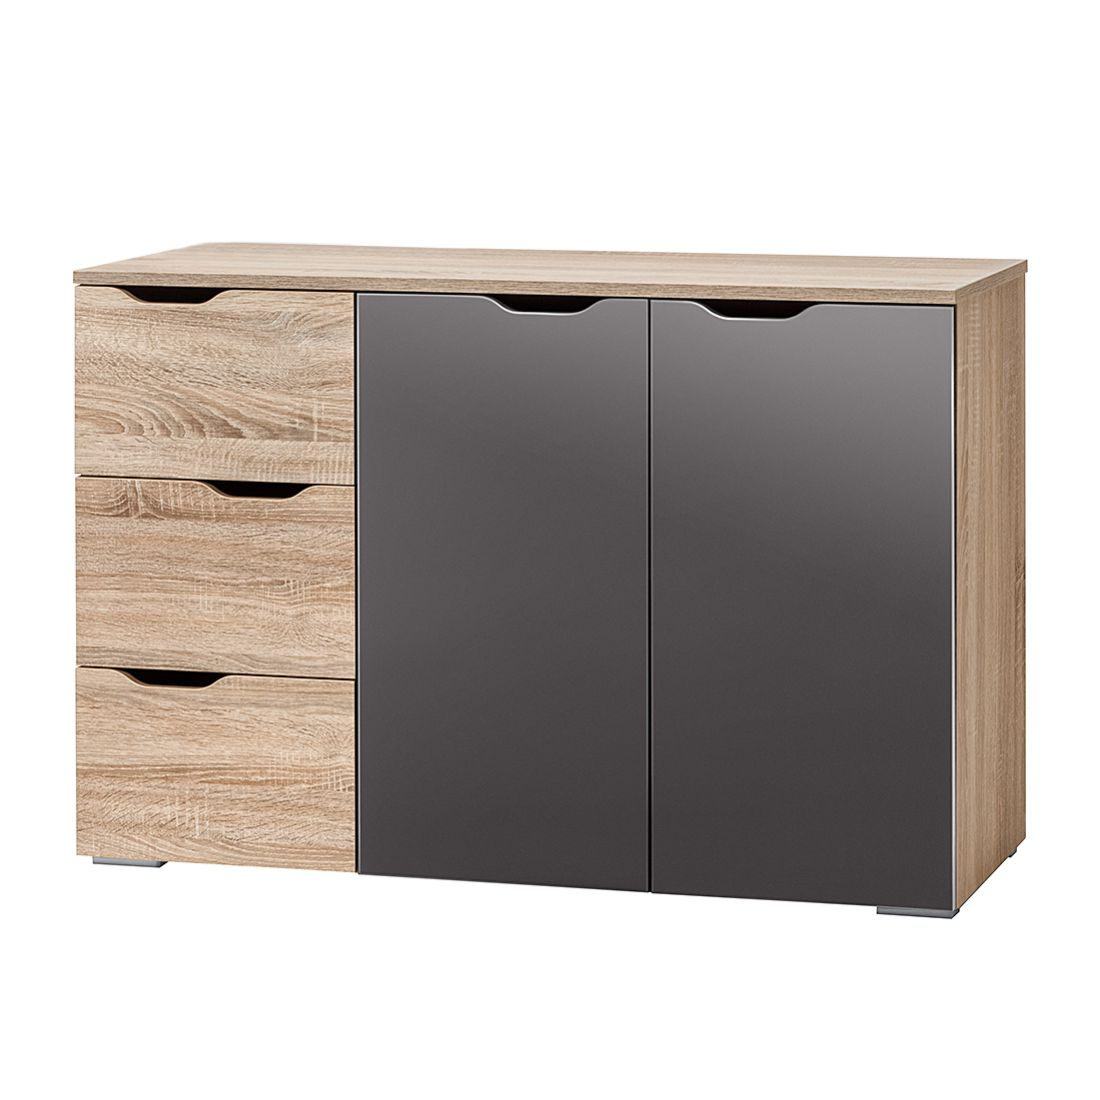 kommode lia ii sonoma eiche dekor grau hochglanz. Black Bedroom Furniture Sets. Home Design Ideas